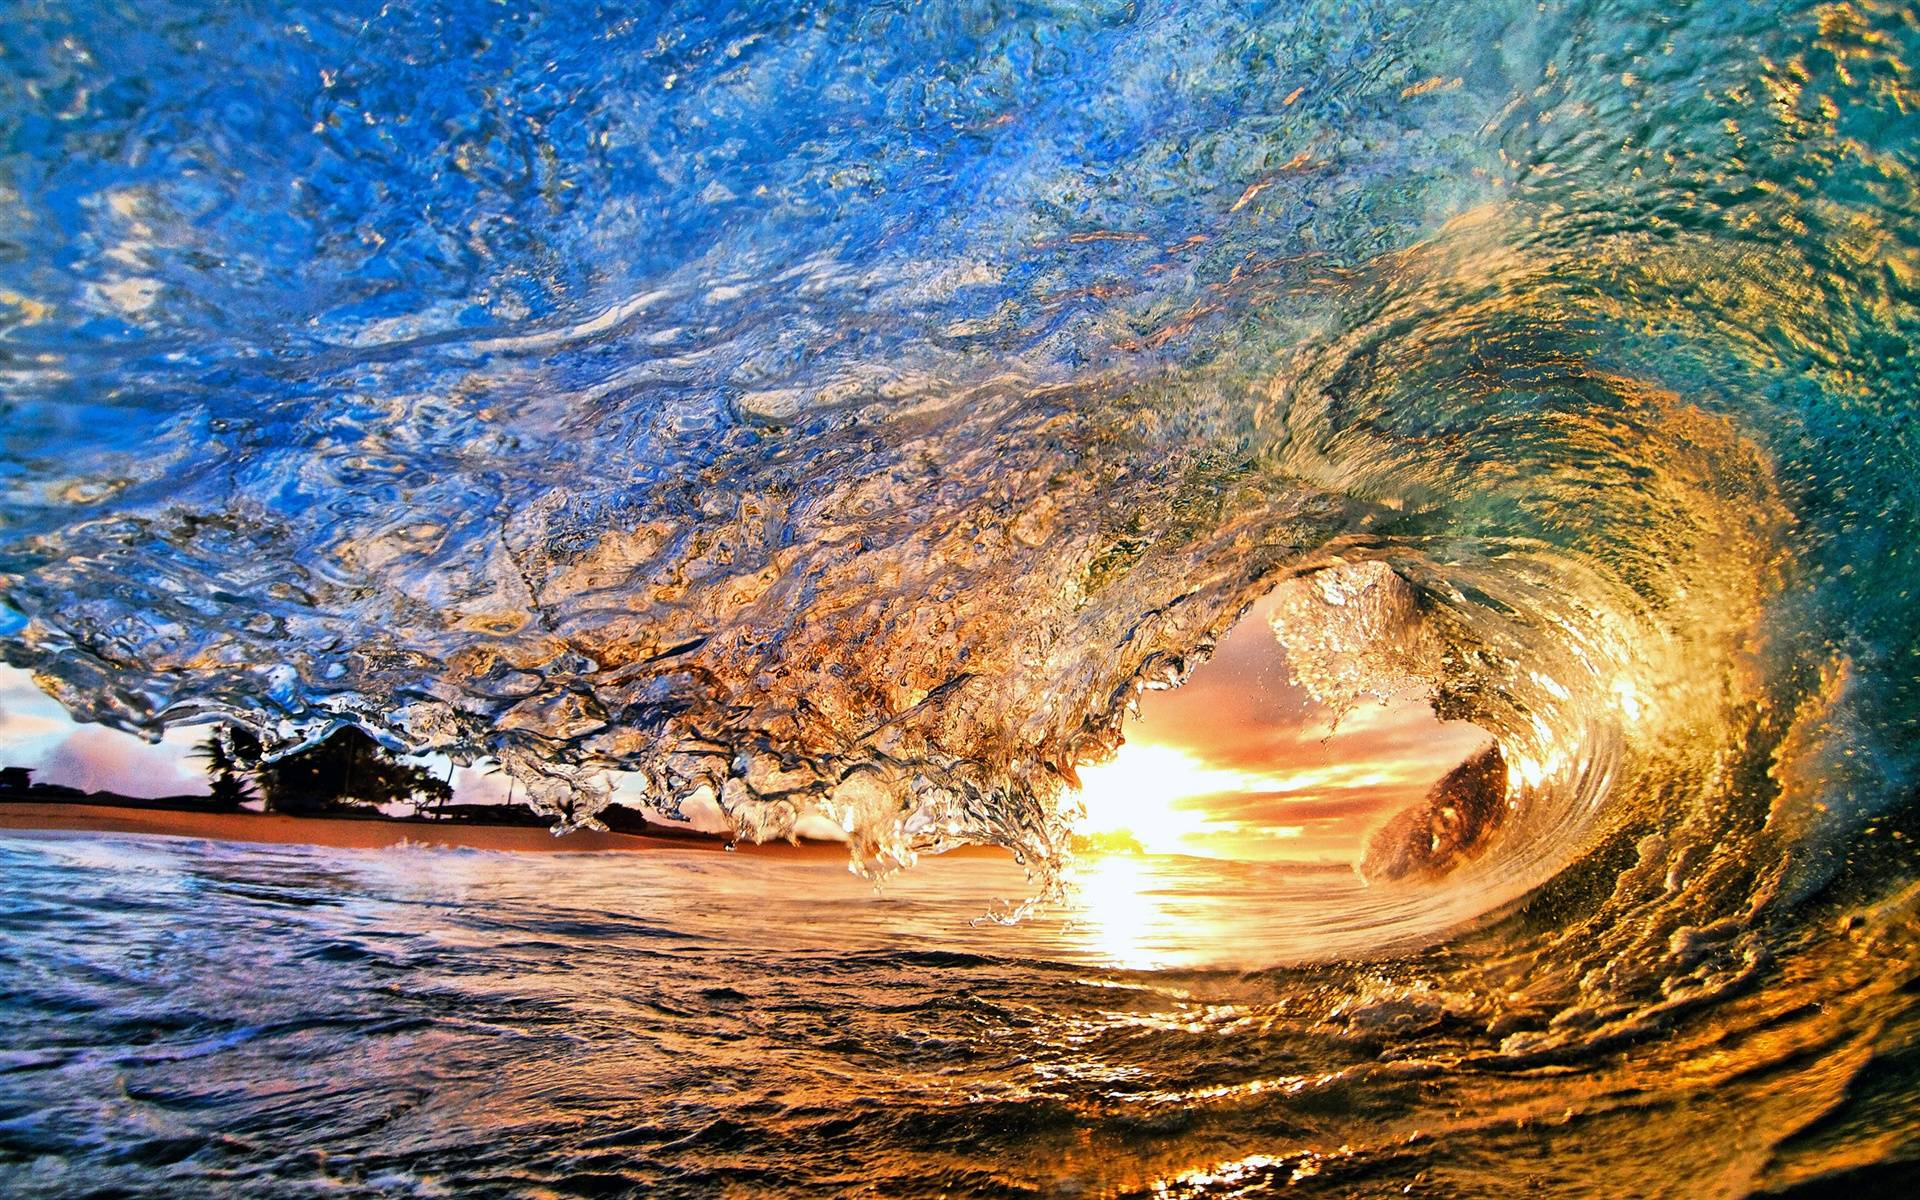 Wave Wallpaper – What Makes it So Great?